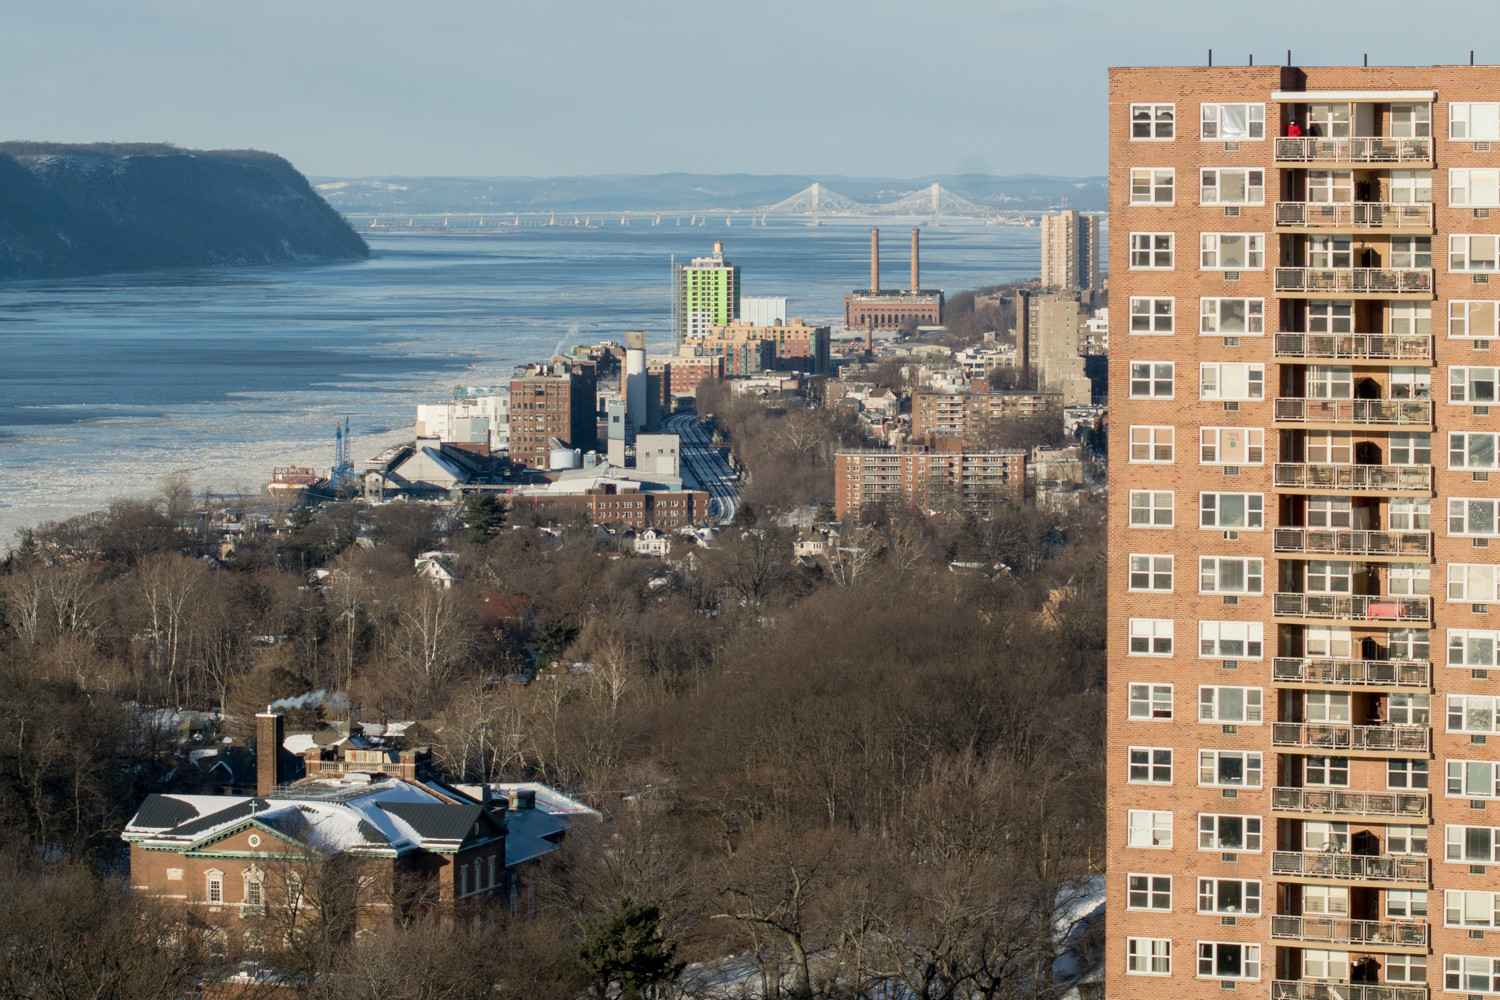 'The smell is bad,' says Jeremy Jutkowitz, a board member at Skyview-on-the-Hudson, of the occasional odor coming from the nearby Yonkers Joint Wastewater Treatment Plant. The odor, which has not drifted into his apartment, is apparent when he is out on his terrace.